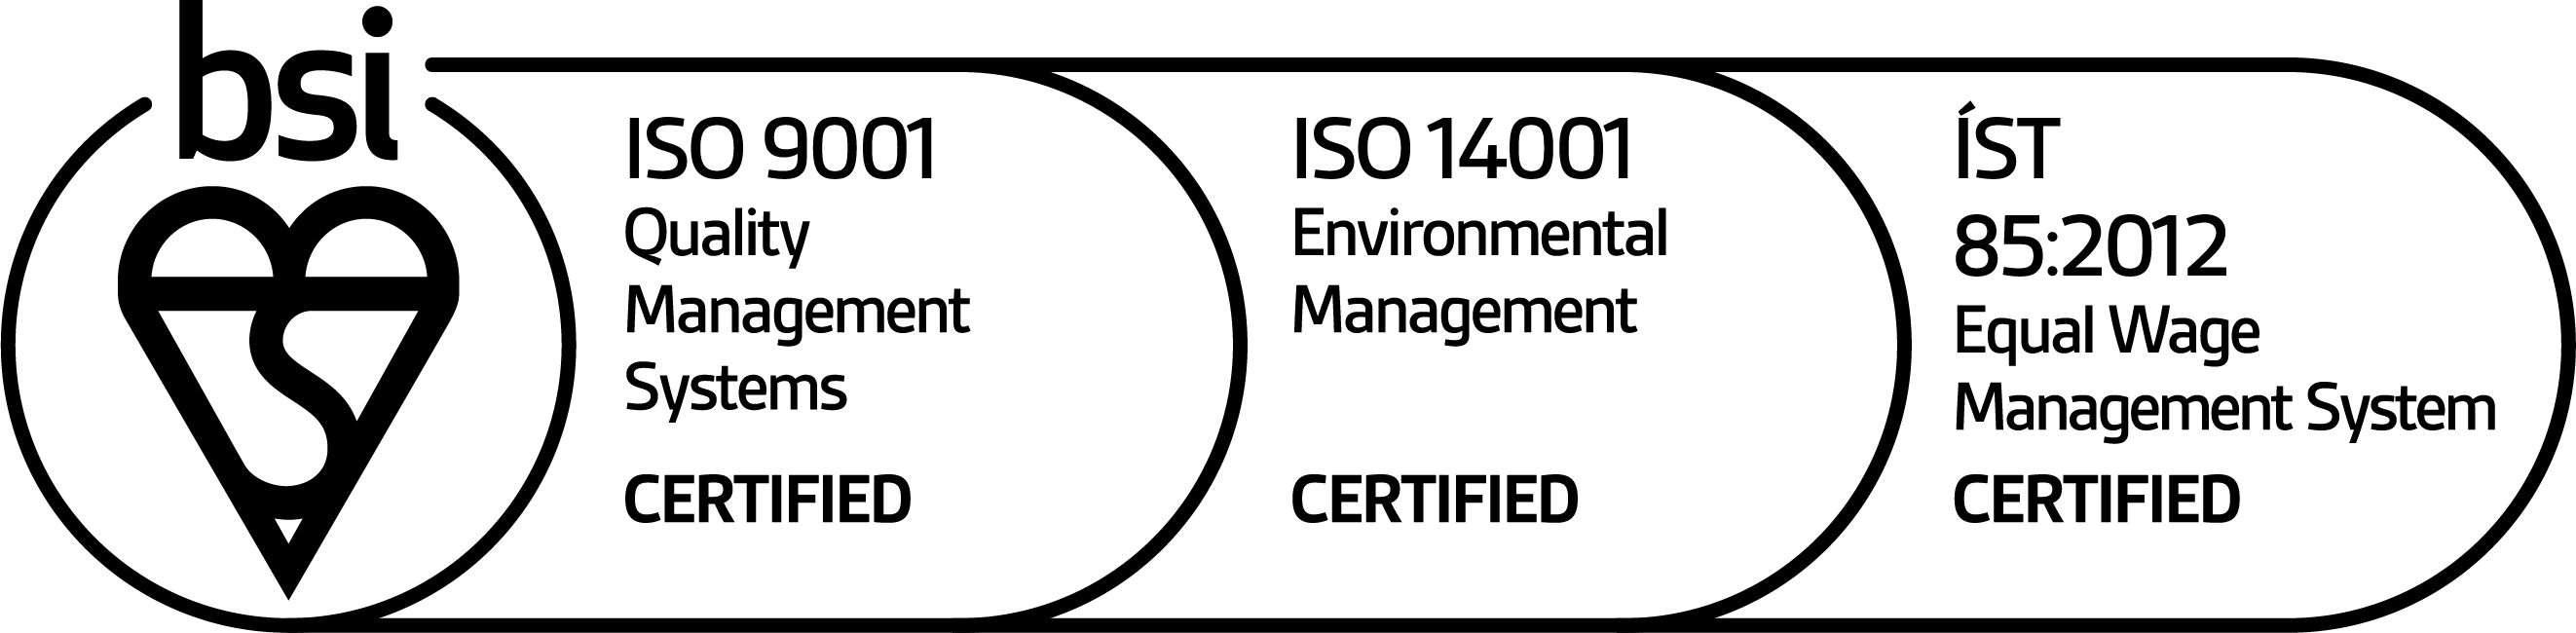 Logo that says bsi ISO 9001 Quality Management Systems CERTIFIED; ISO 14001 Environmental Management CERTIFIED; ÍST 85:2012 Equal Wage Management System CERTIFIED